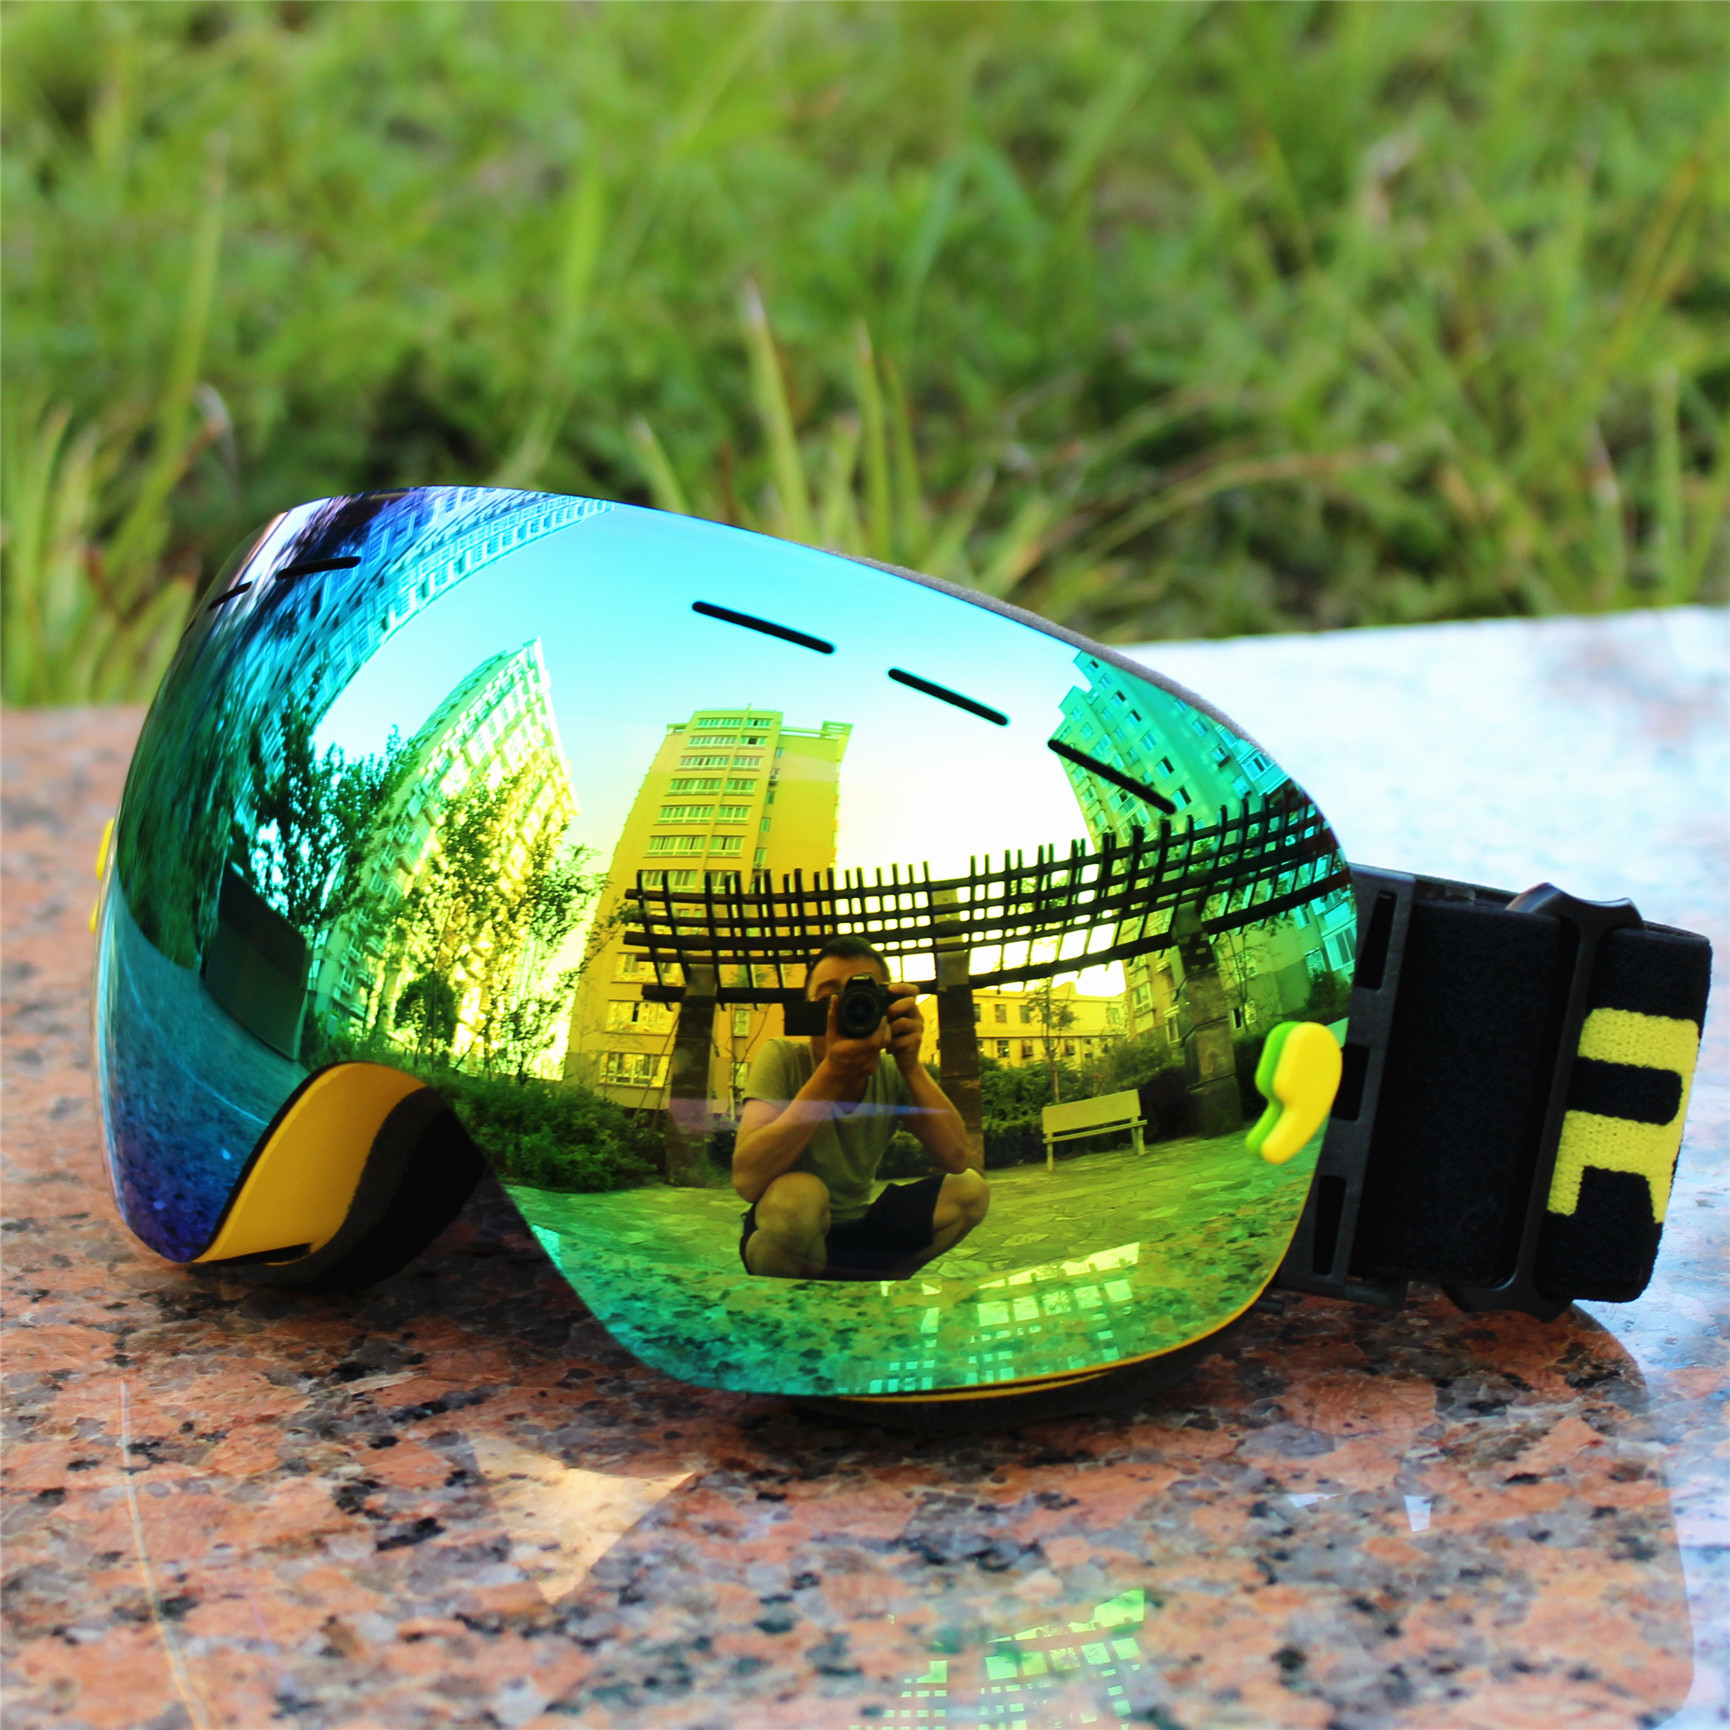 Brand RBWORLD Big Ski Goggles Double Lens UV400 Anti-fog Adult Snowboard Skiing Glasses Women Men Polarized Snow Eyewear